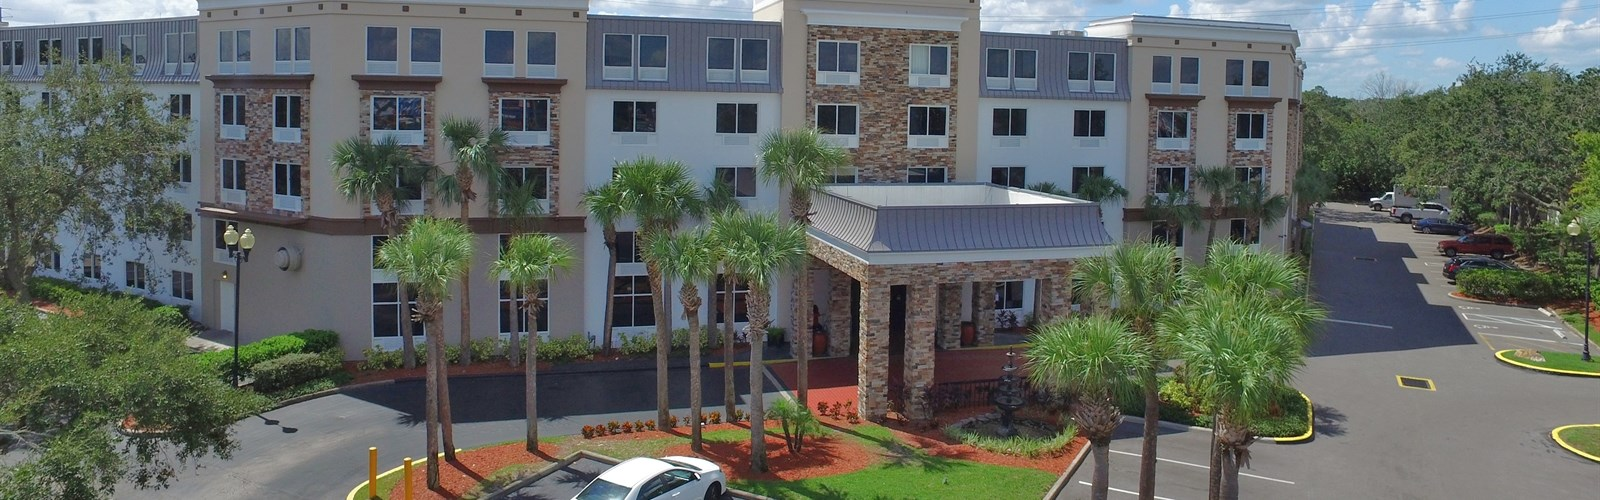 Exterior of our Disney Hotel in Kissimmee, FL